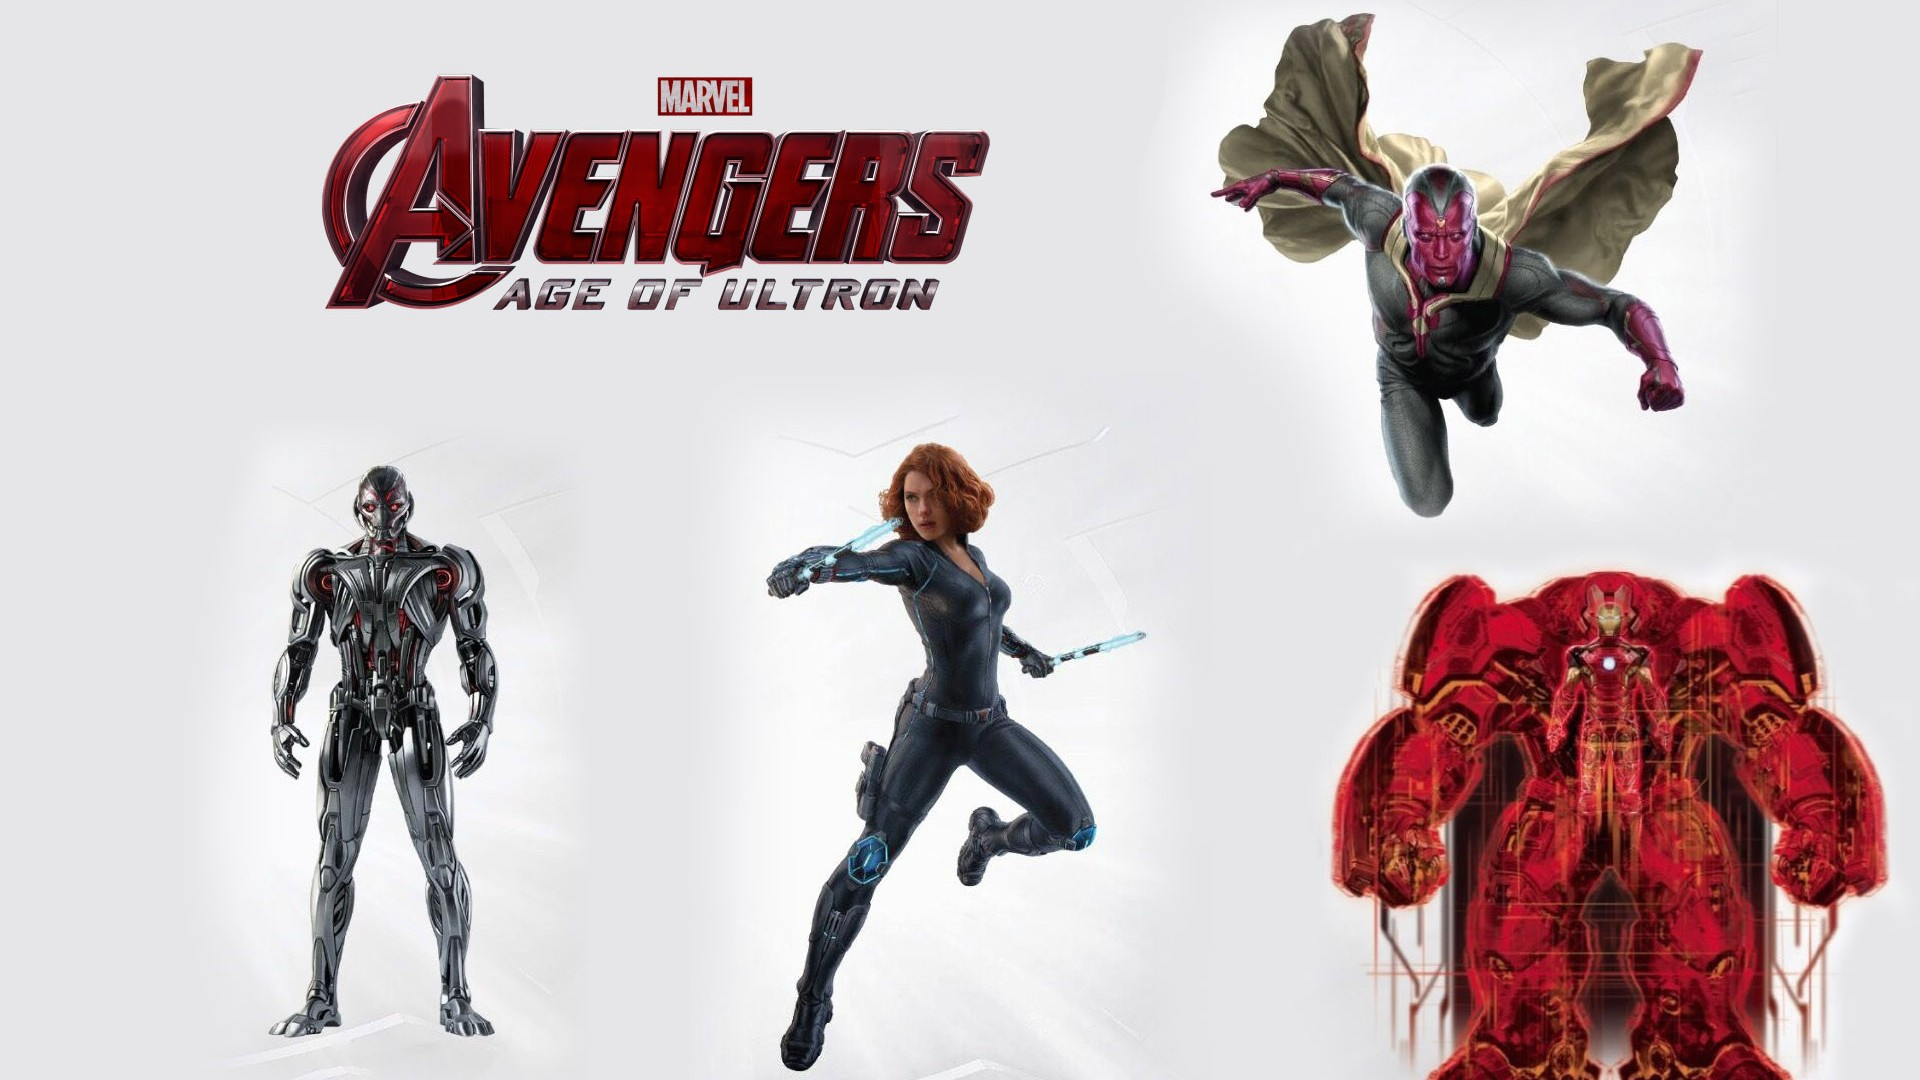 Download Avengers Age Of Ultron Marvel Poster HD Wallpaper Search 1920x1080